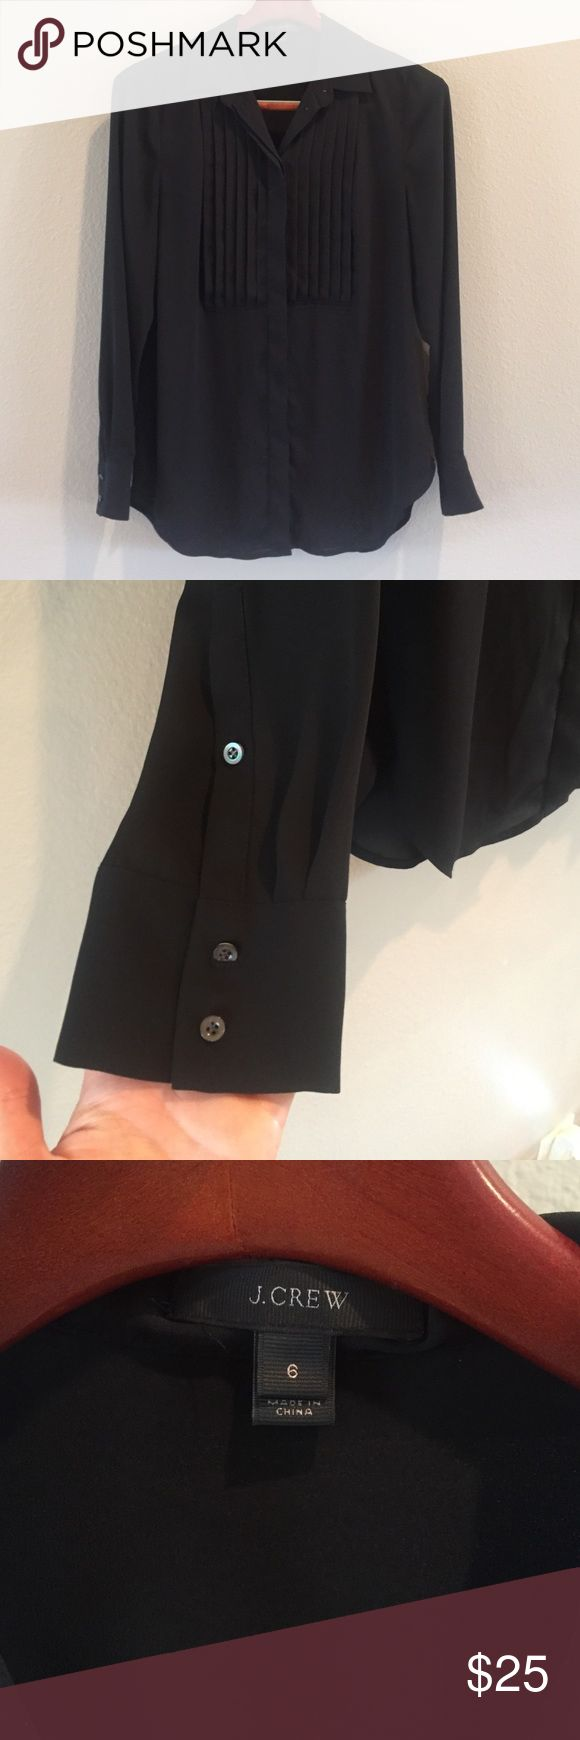 "✨J.Crew Tuxedo Shirt✨ J.Crew black tuxedo shirt✨In Like New Condition✨ 100% Polyester✨ Hidden Buttons✨Bust is 38"", Length is 29"" J. Crew Tops Button Down Shirts"